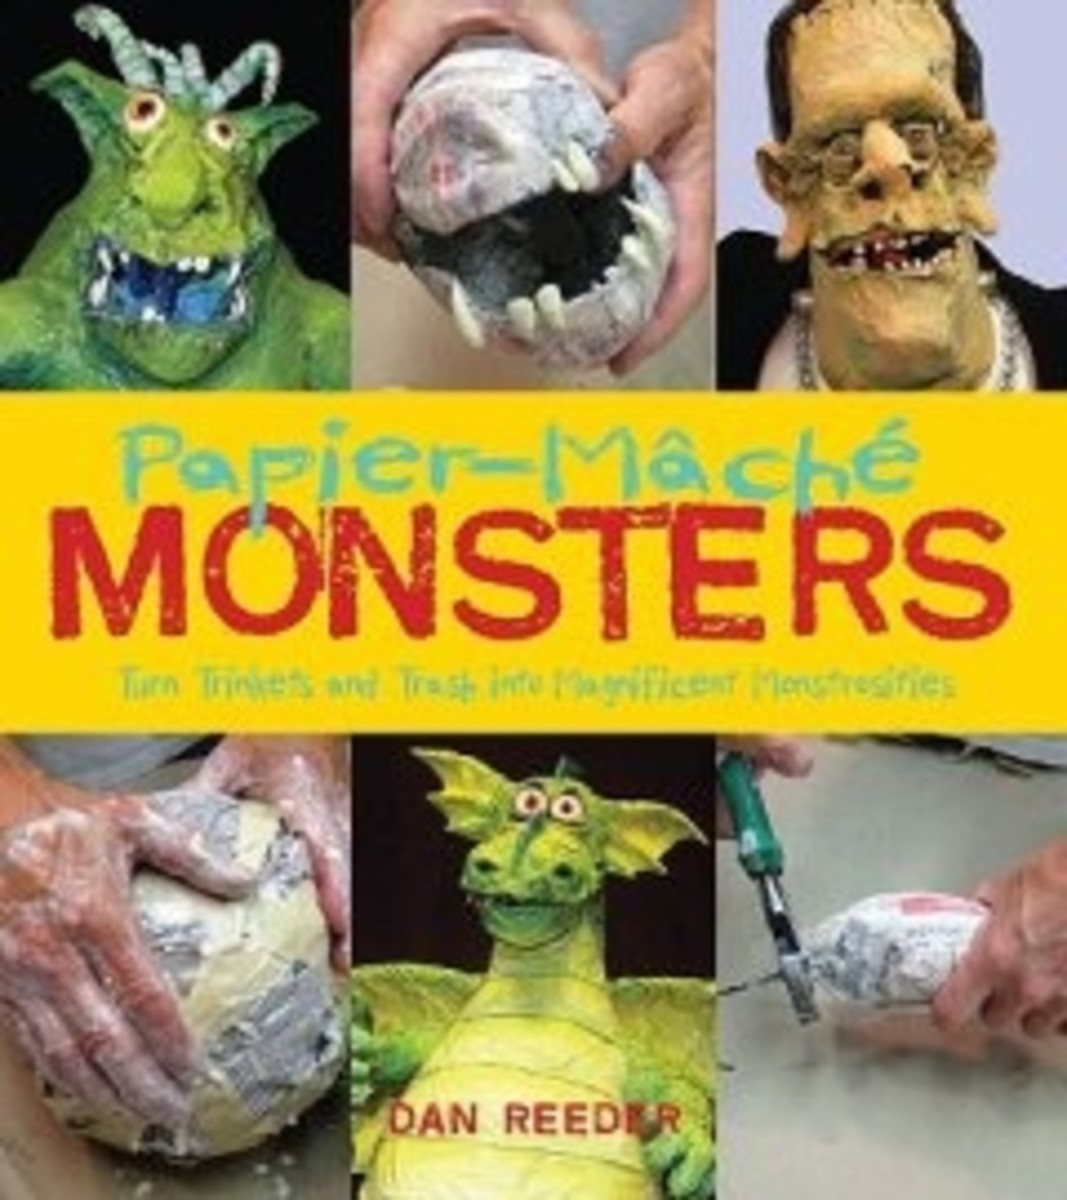 Papier-Mache Monsters: Turn Trinkets and Trash into Magnificent Monstrosities   ~ Dan Reeder